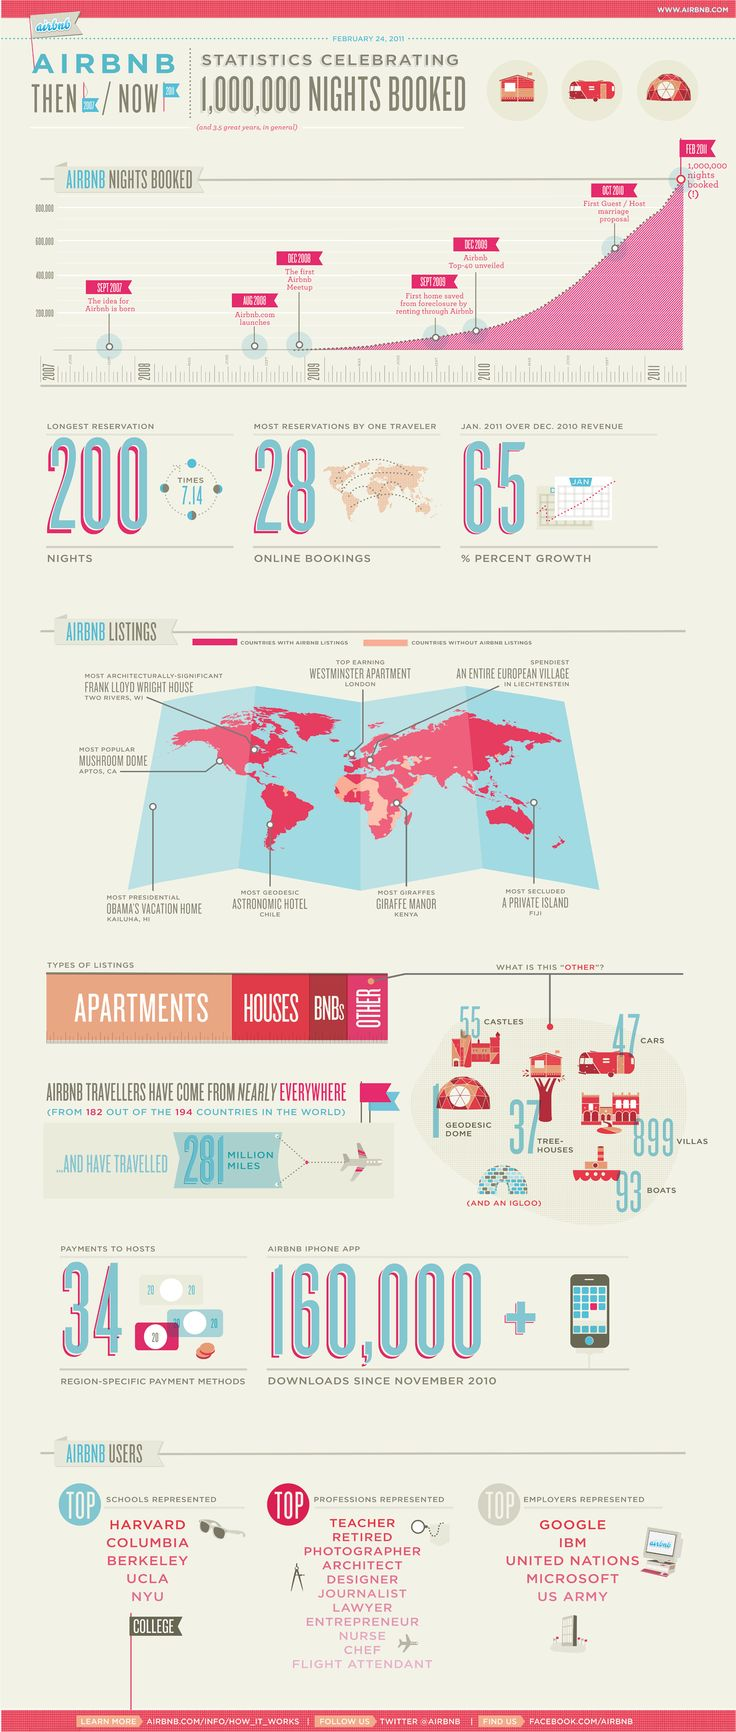 such a great infographic